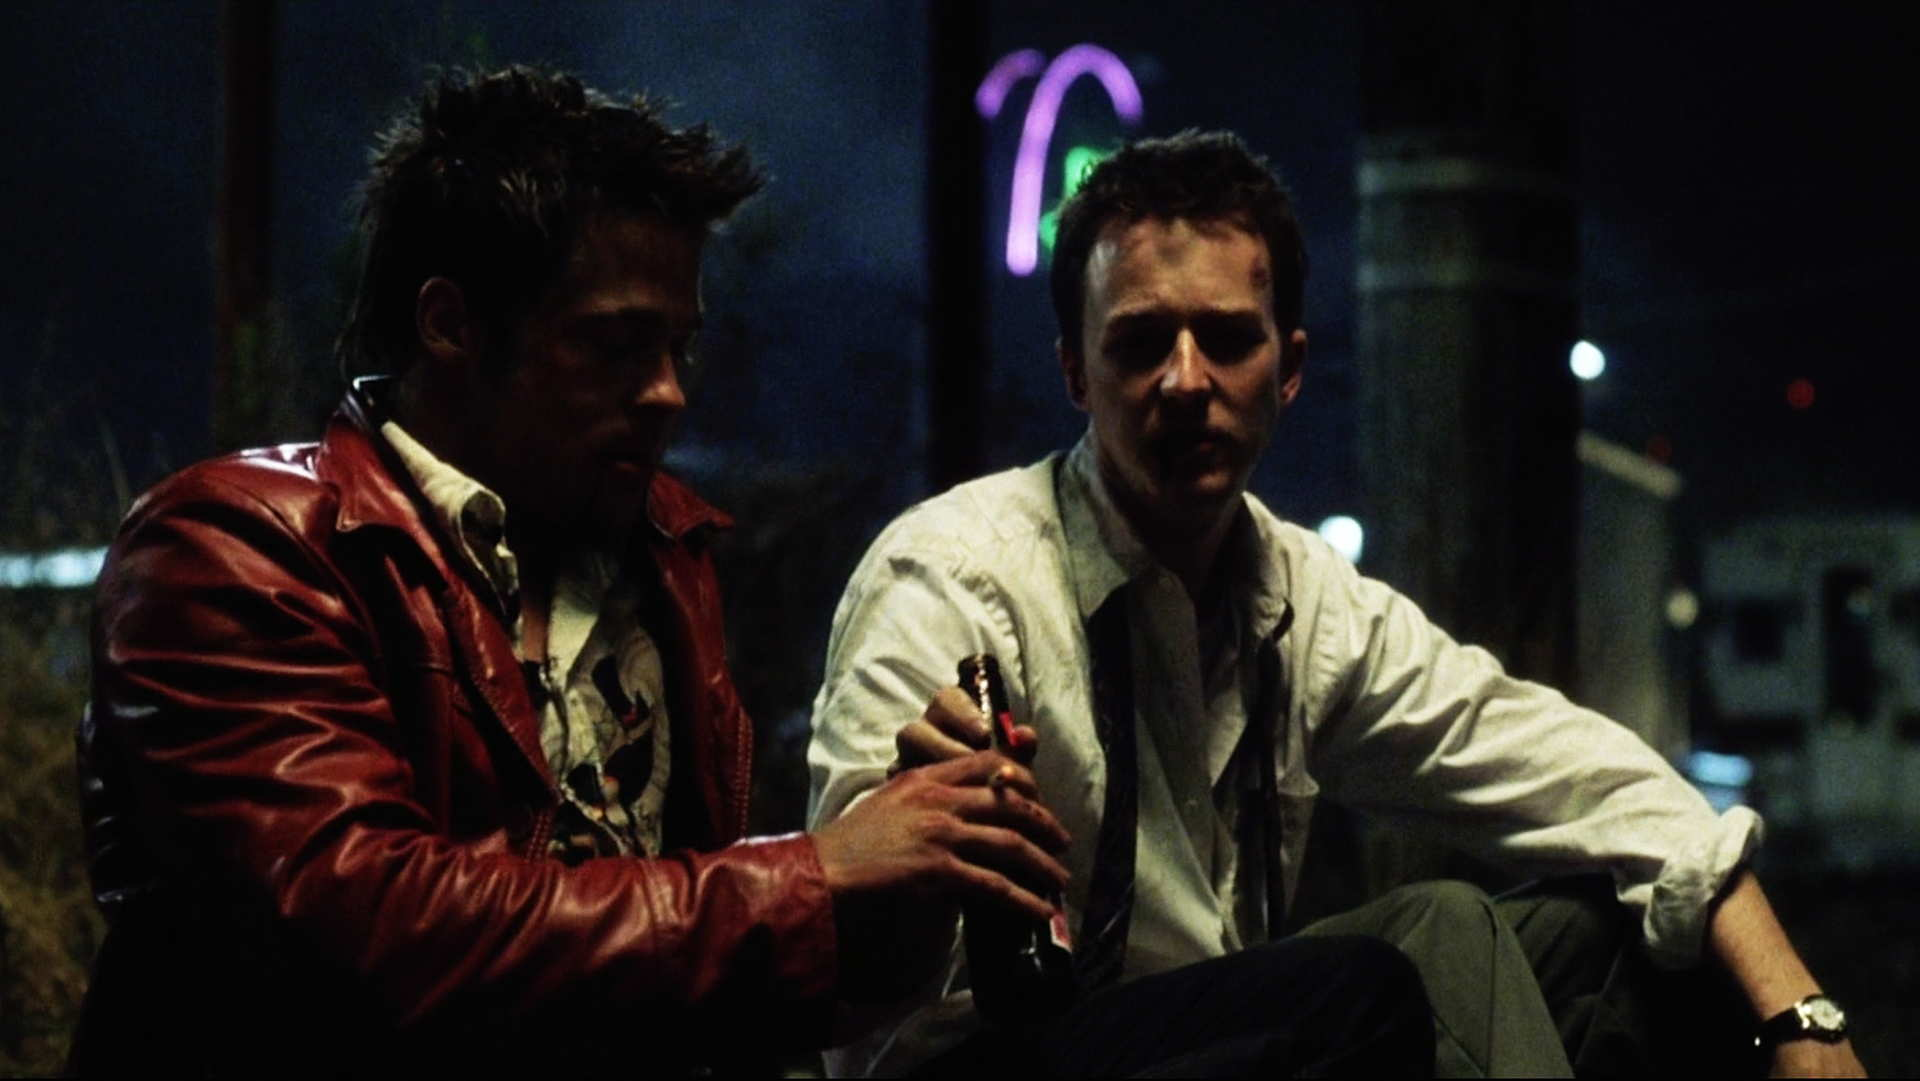 fight club movie theme A review of fight club exploring the themes of nihilism and enlightenment.